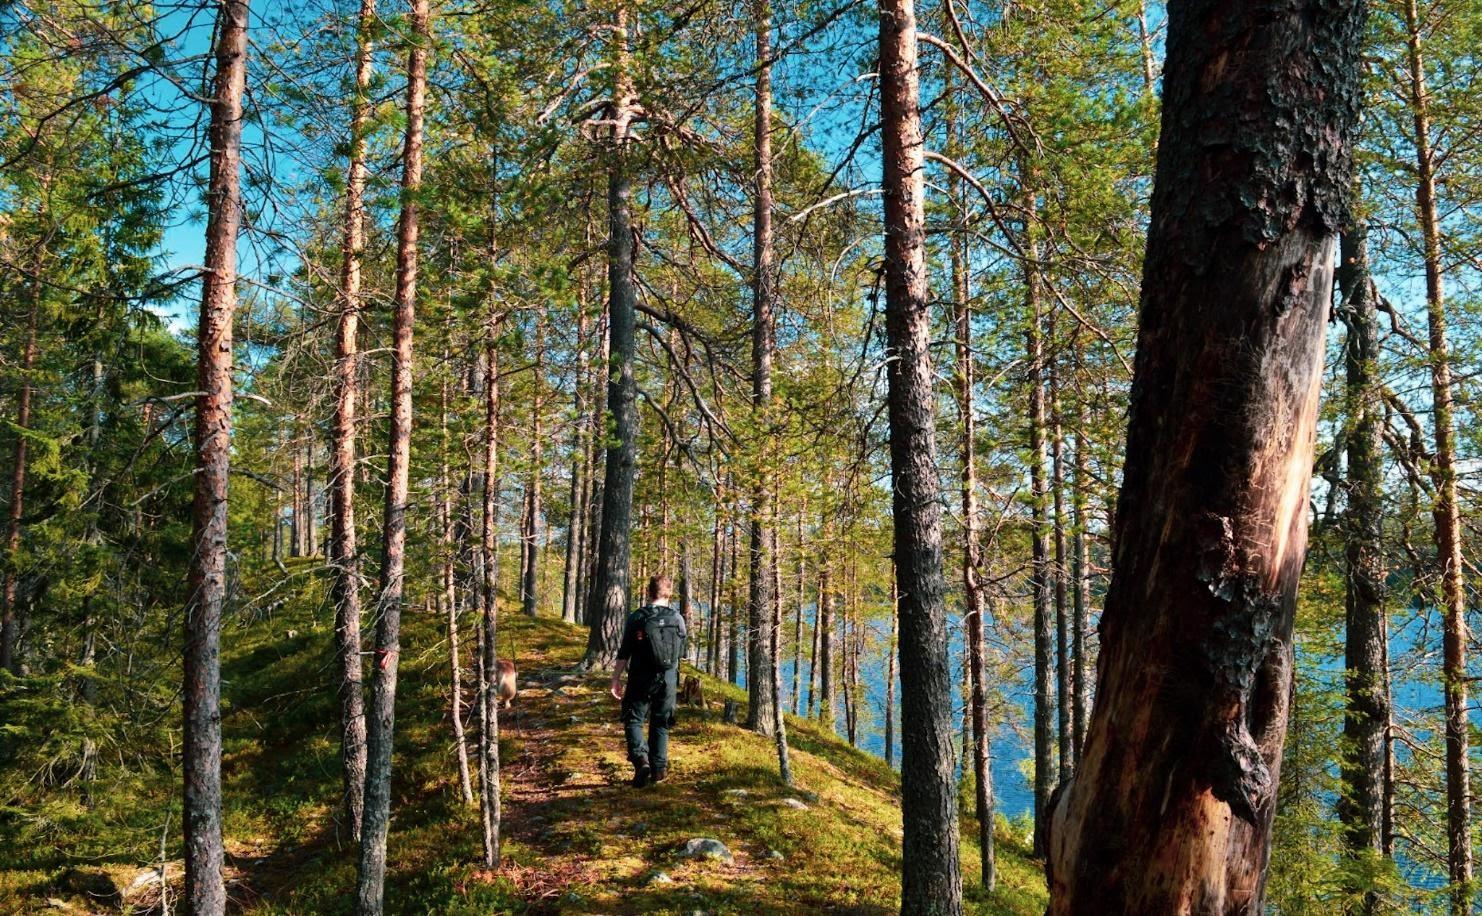 Konttijärvi Posio. Lakes on both sides of the path and no one nearby- Lapland, Finland summer Photo Hennariikka Parviainen